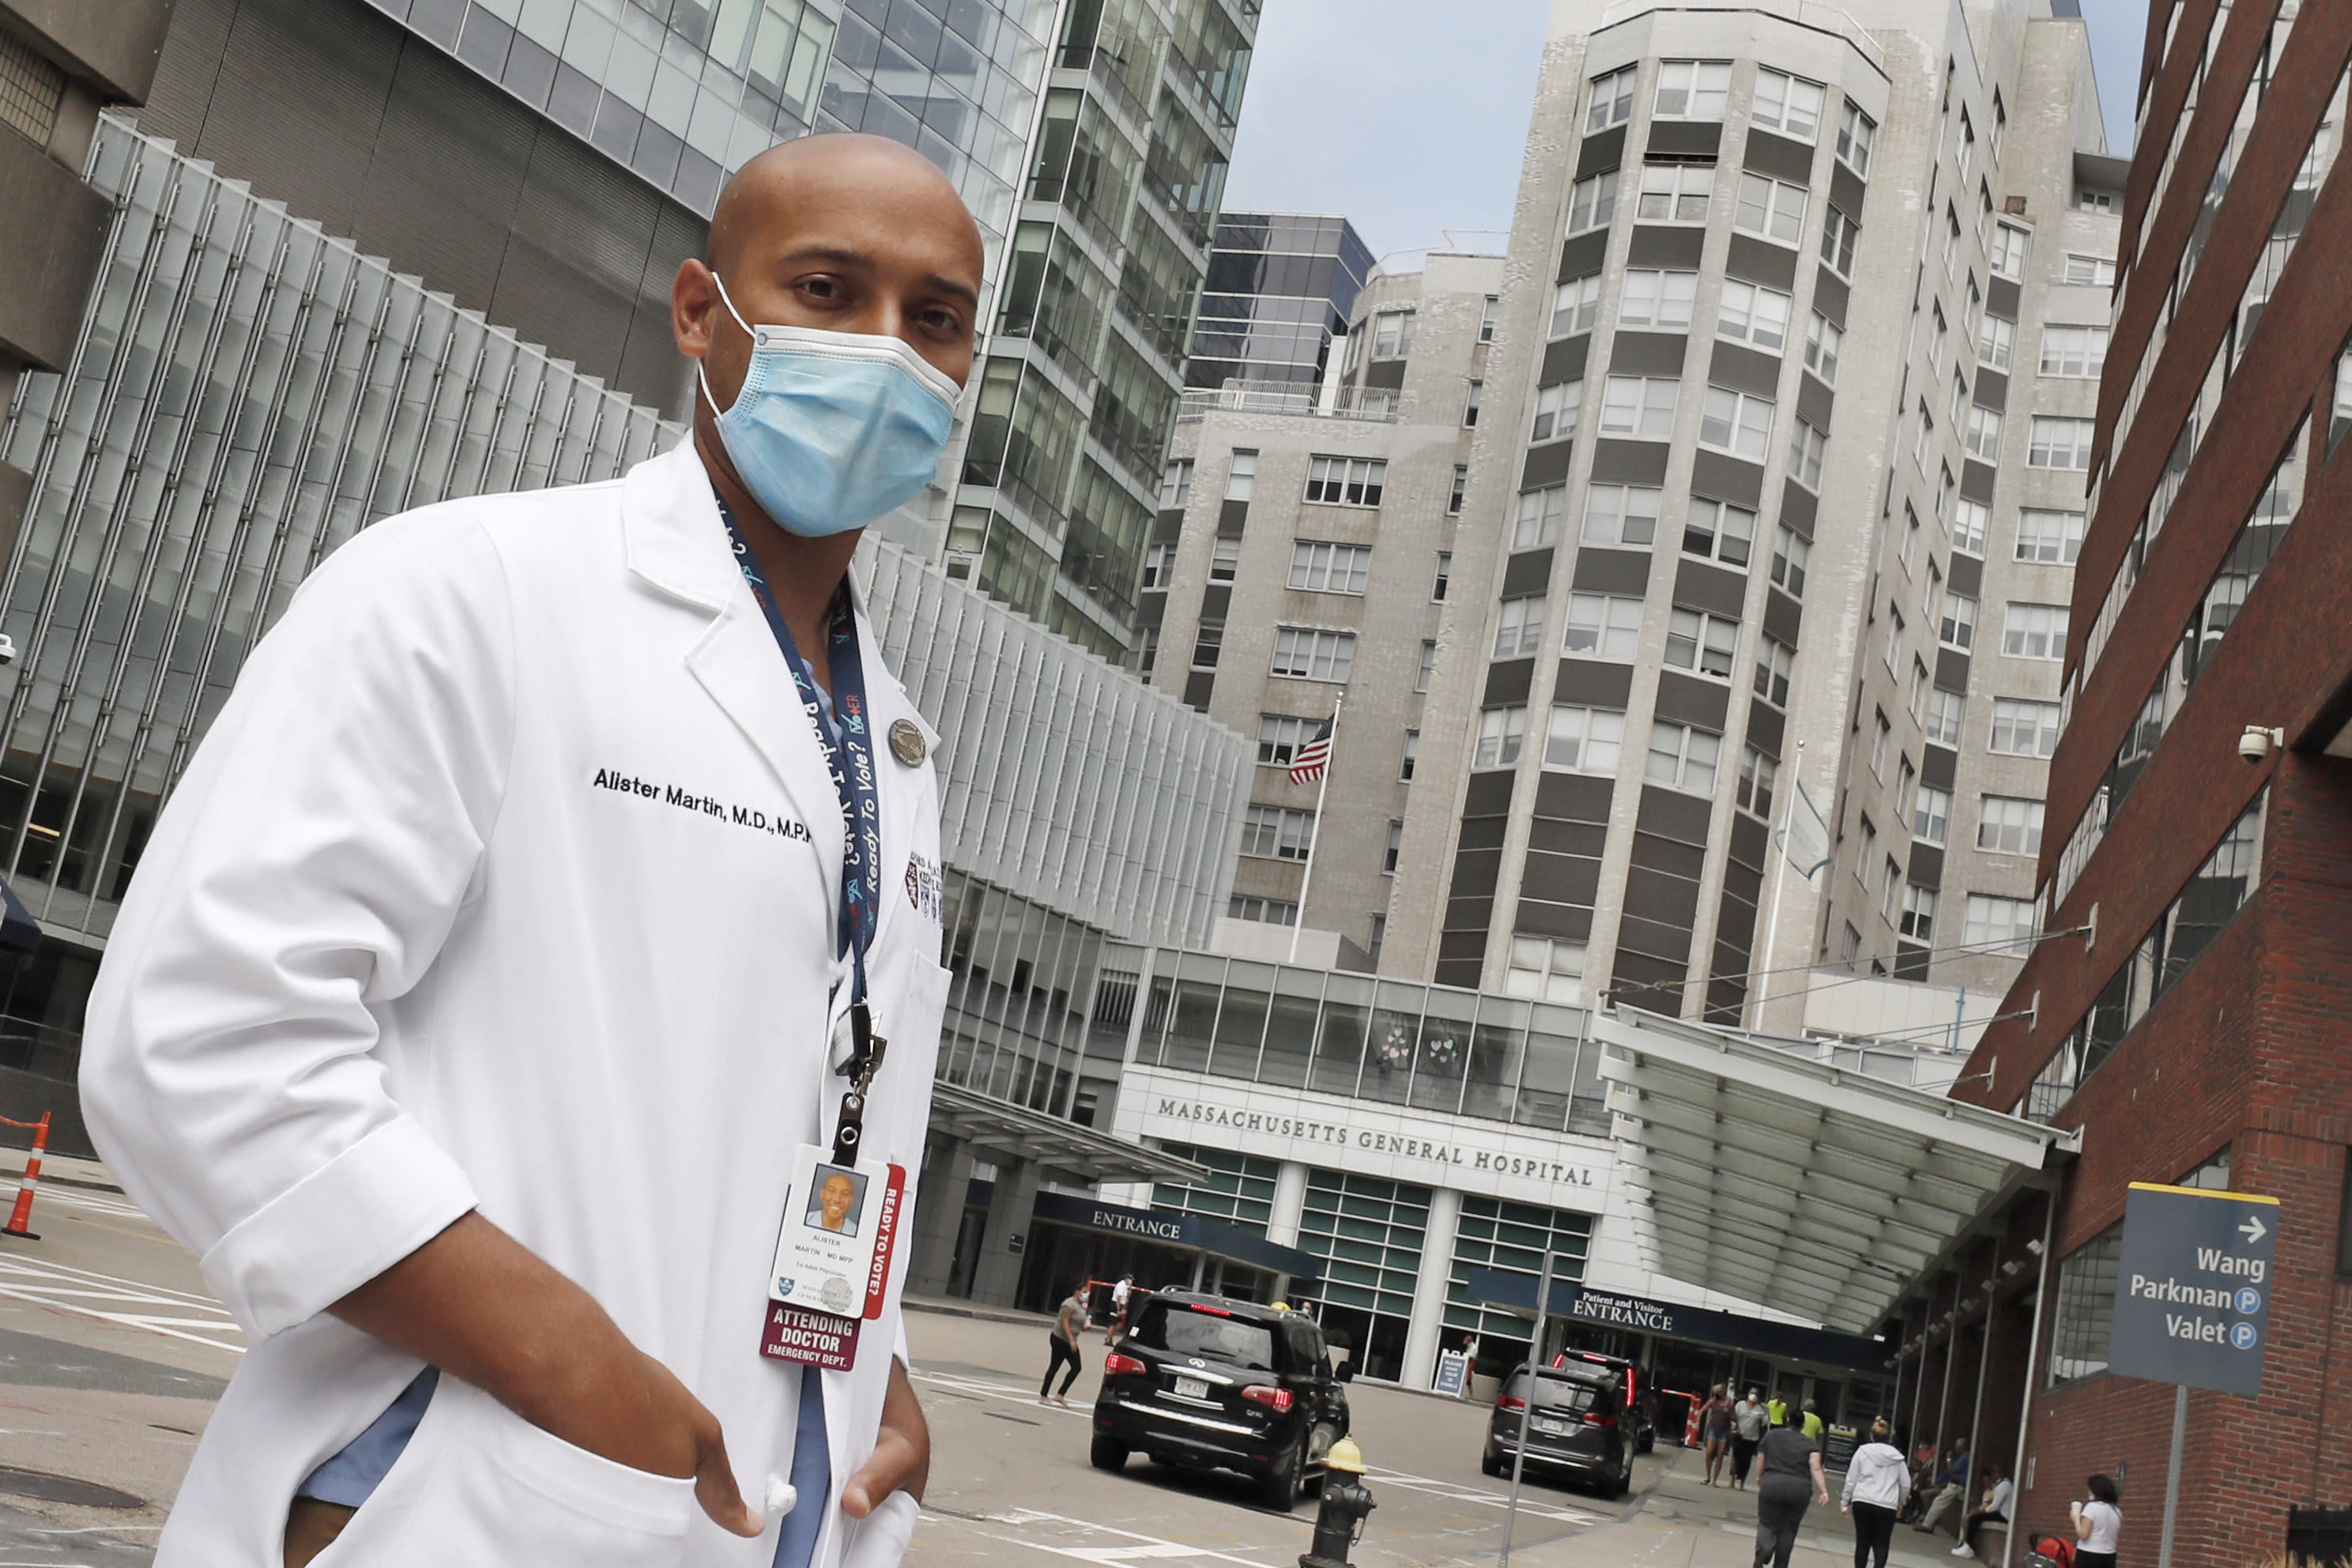 """Alister Martin, an emergency room doctor at Massachusetts General Hospital, poses outside the hospital, Friday, Aug. 7, 2020, in Boston. Martin founded the organization """"VotER"""" to provide medical professionals voter registration resources for patients who are unregistered voters. (AP Photo/Charles Krupa)"""